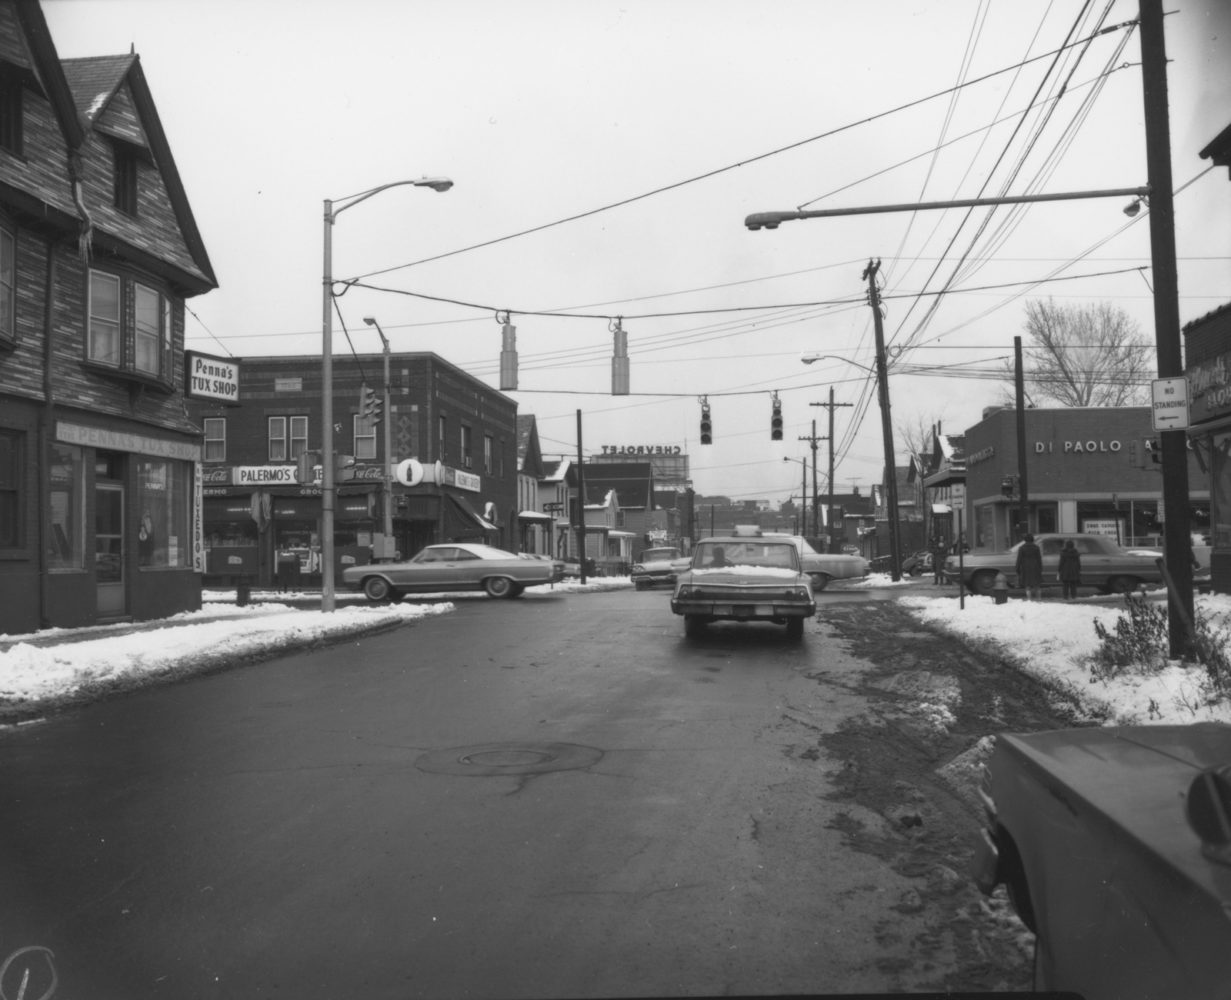 Plymouth Avenue and Smith Street with DiPaolo Bakery in Rochester. - photo from City of Rochester